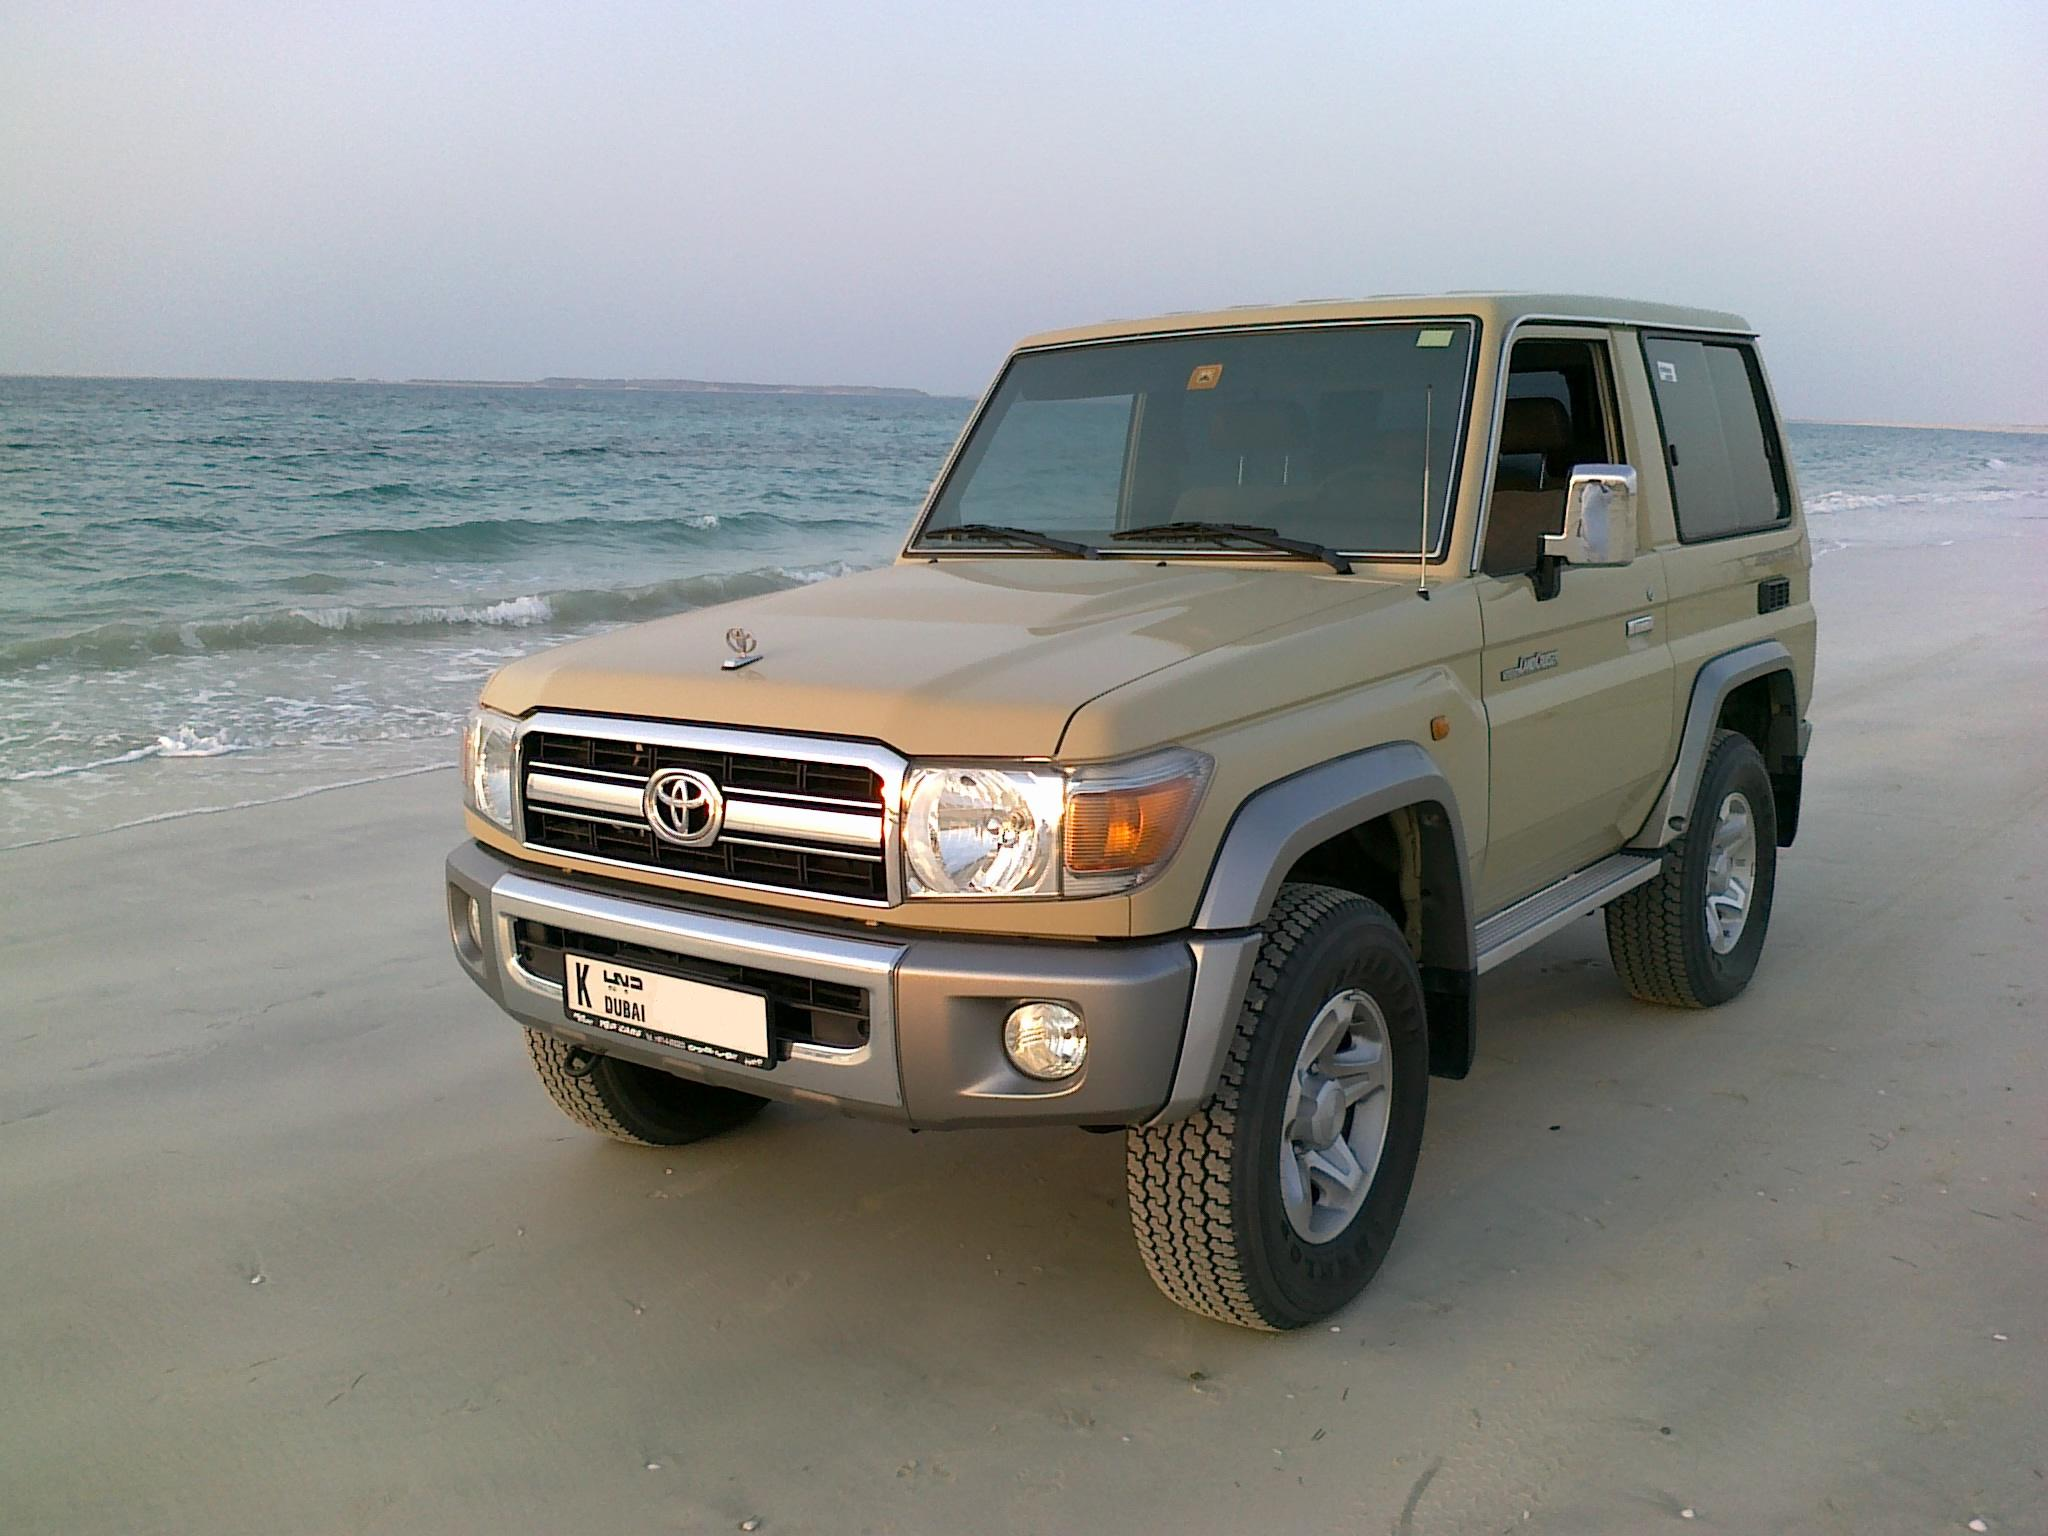 http://images.wikia.com/tractors/images/d/df/LANDCRUISER70-2009.JPG